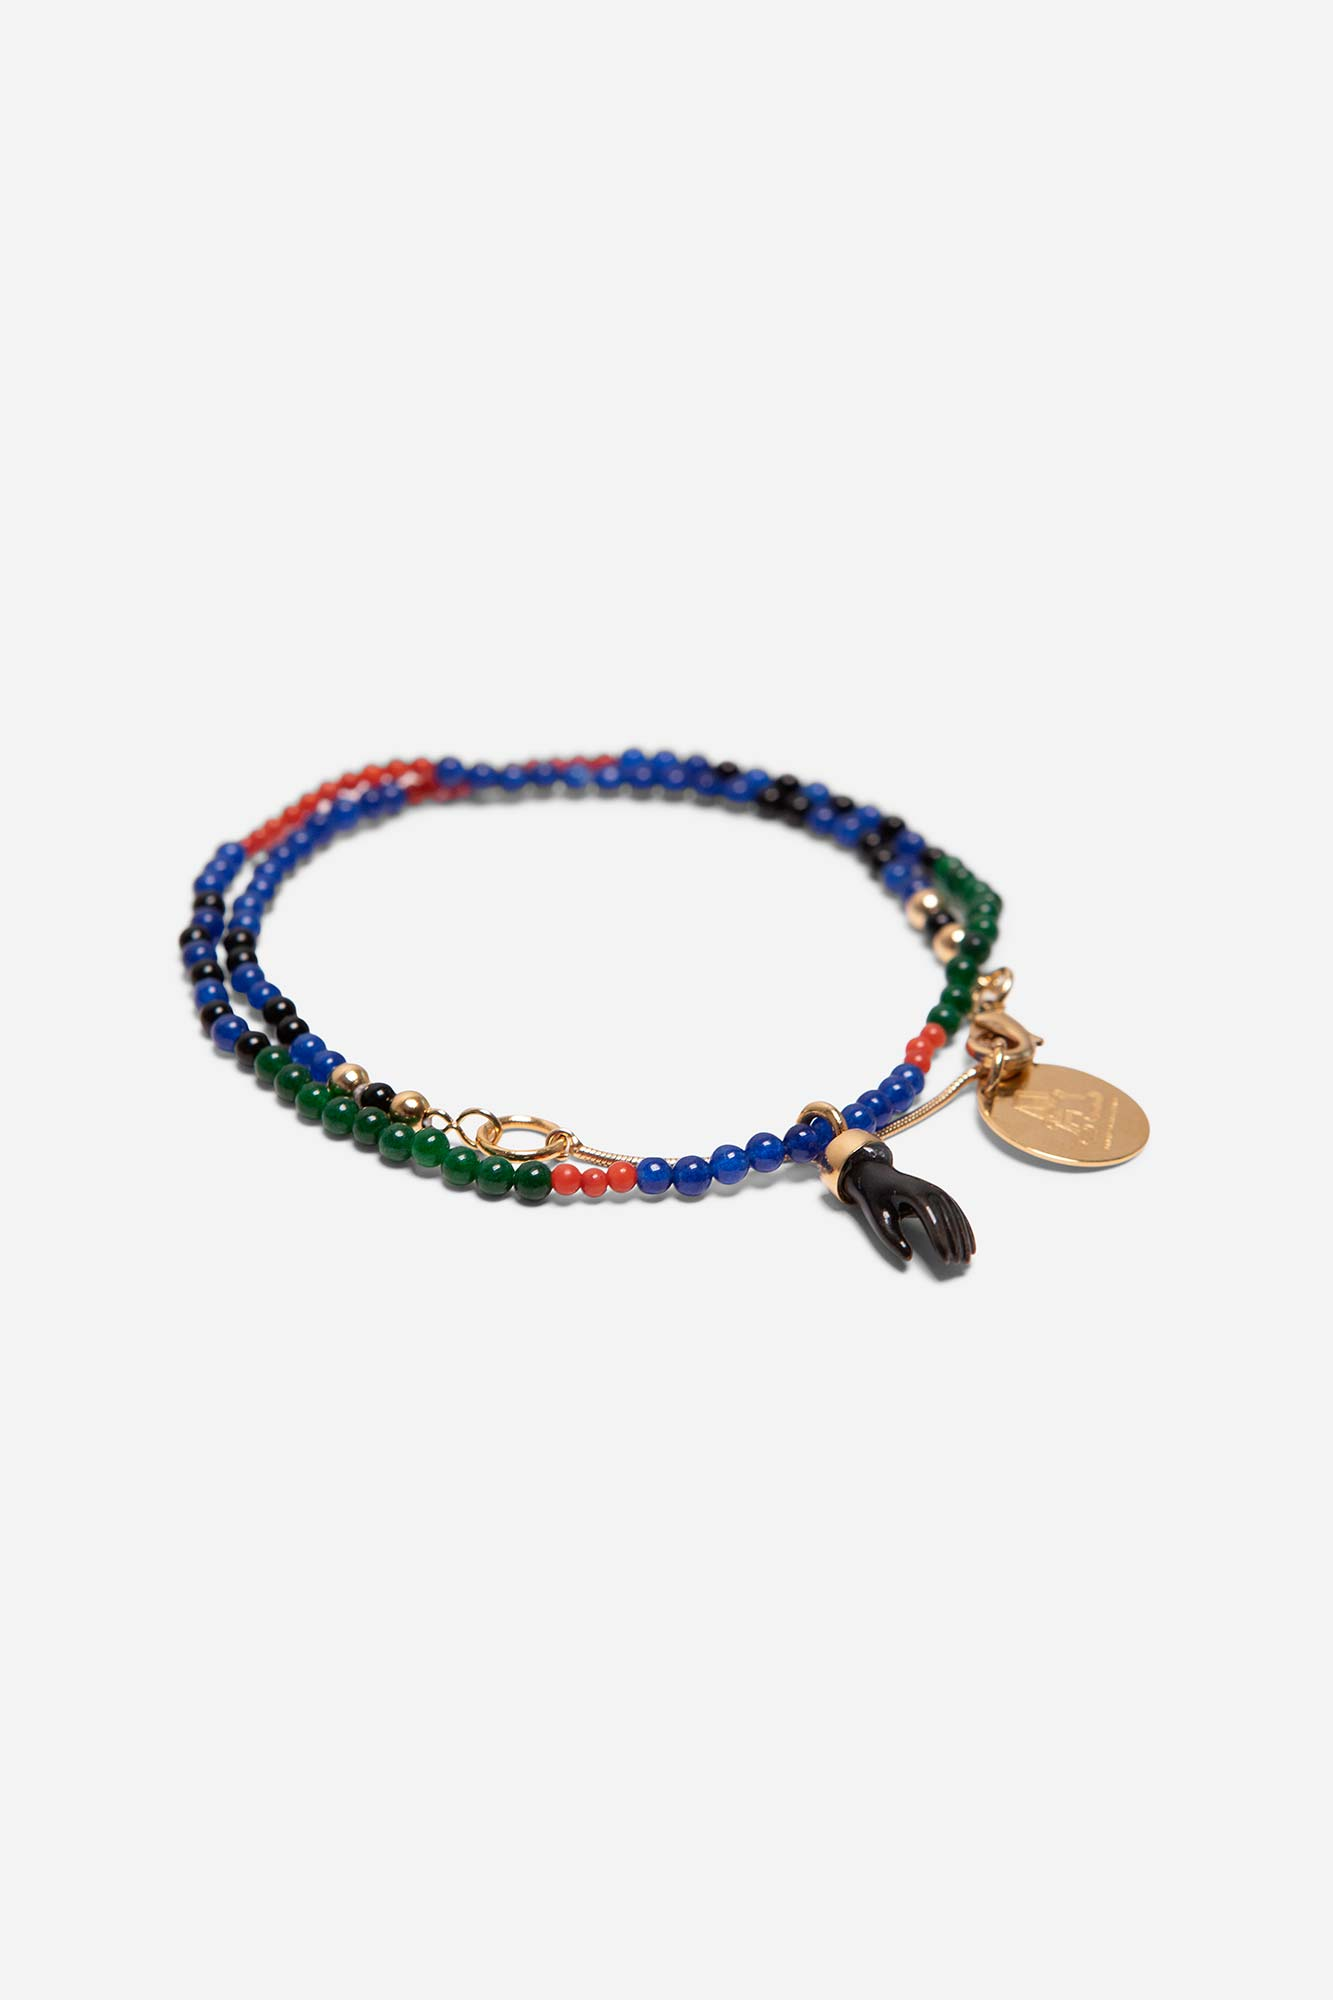 MINI HAND & BEADS NECKLACE